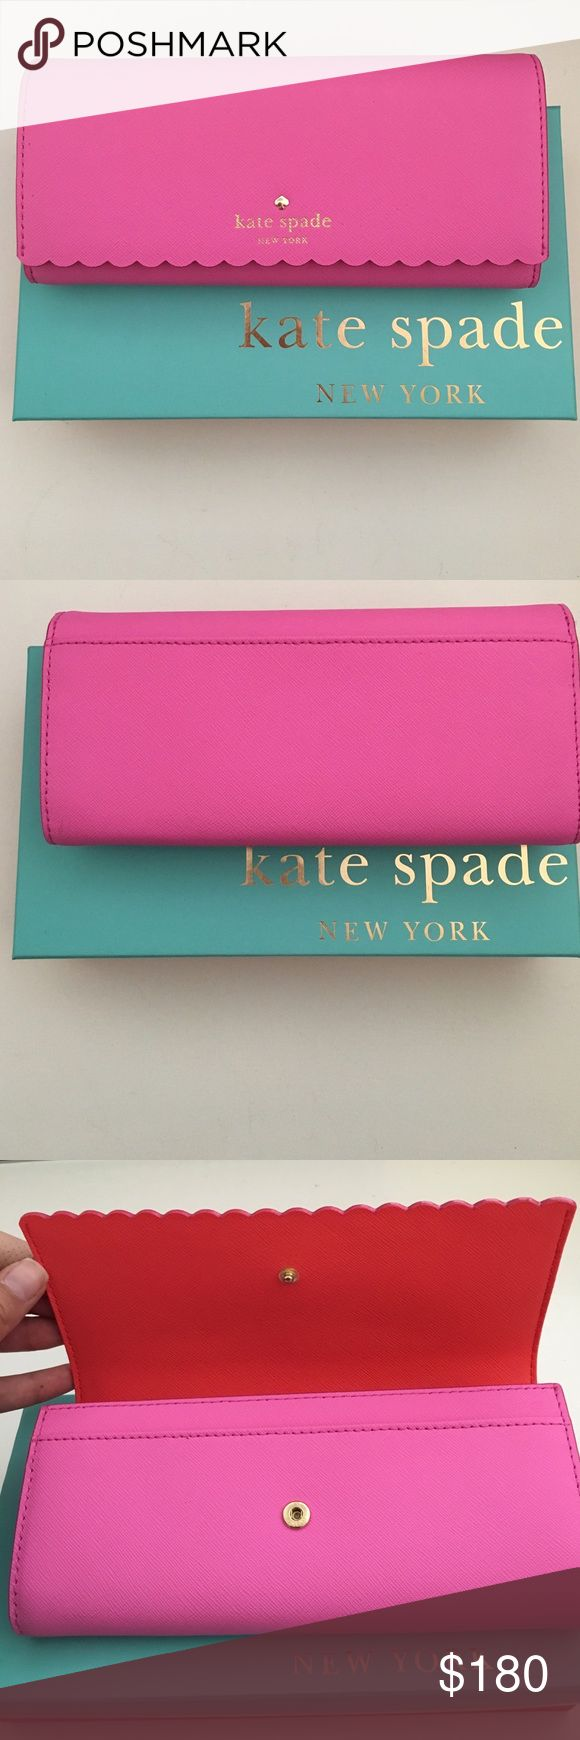 Kate Spade Cindy Wallet Style: Cape Drive Cindy Scalloped Saffiano Leather Wallet.                                                                          Brand new with original tags. Never used. Sold out style & color. Comes with original box & tags. No trades. Kate Spade Bags Wallets